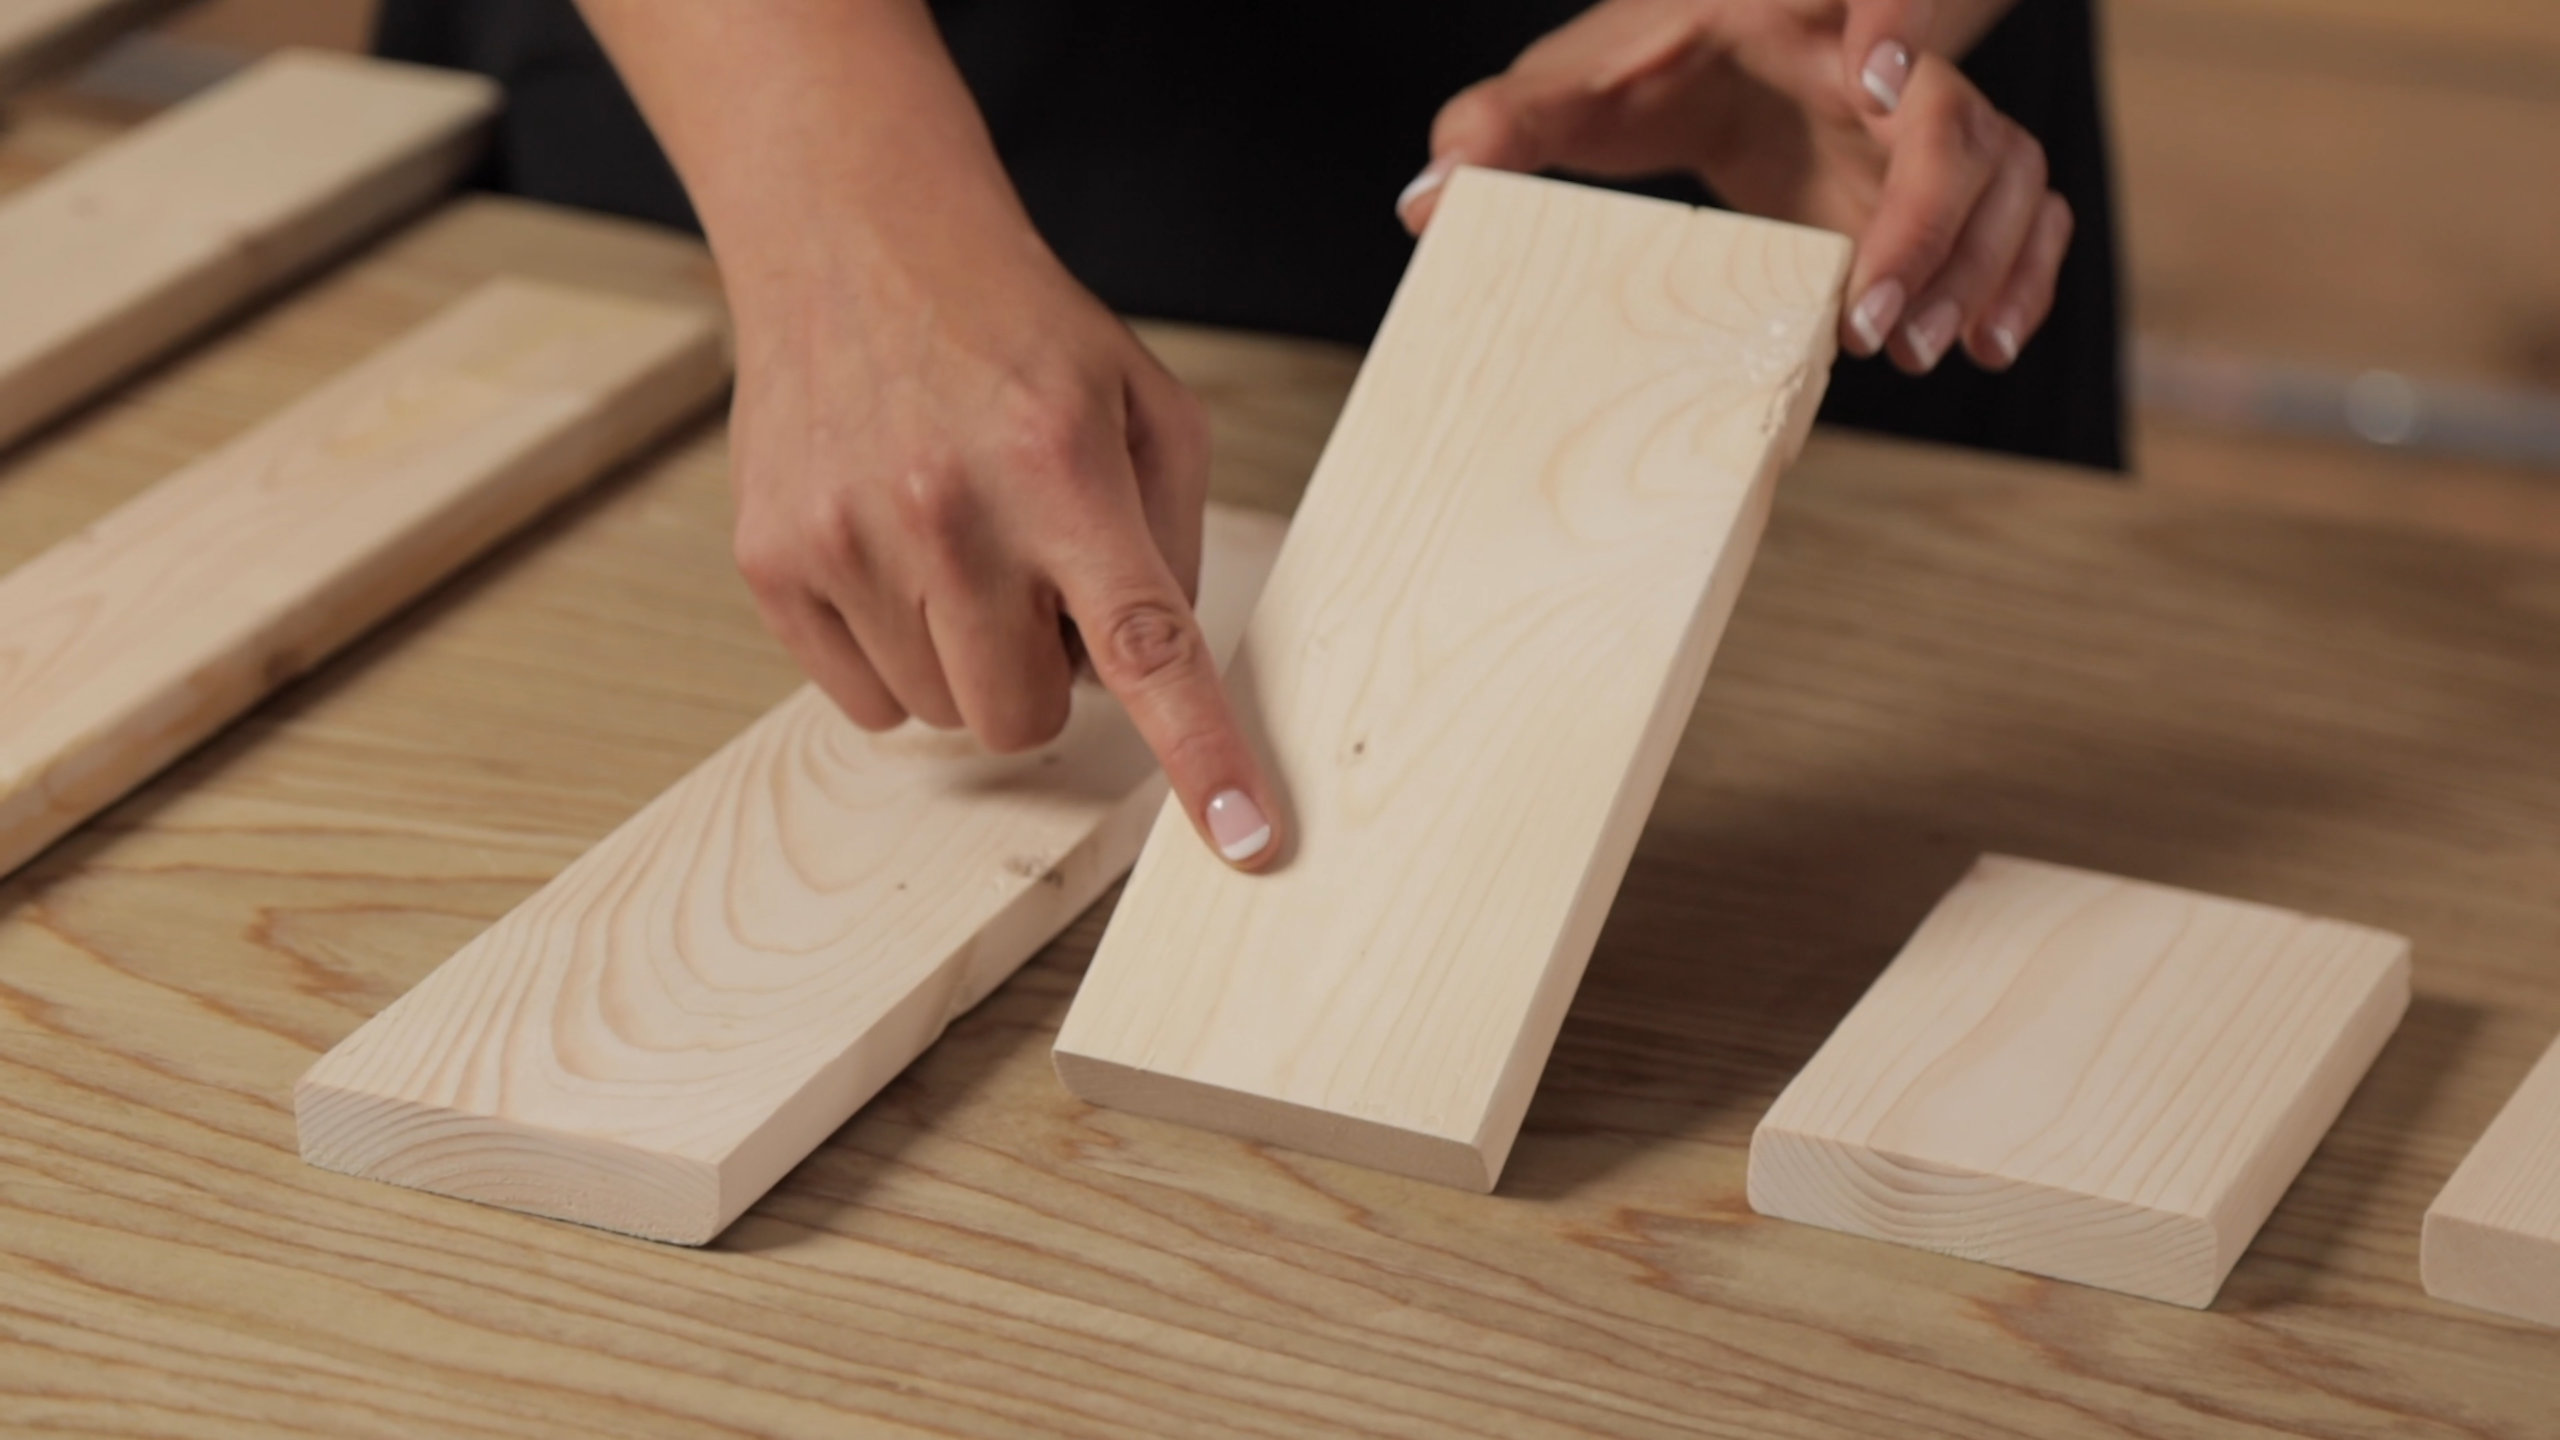 Get a wood with a smooth finish for the boxes